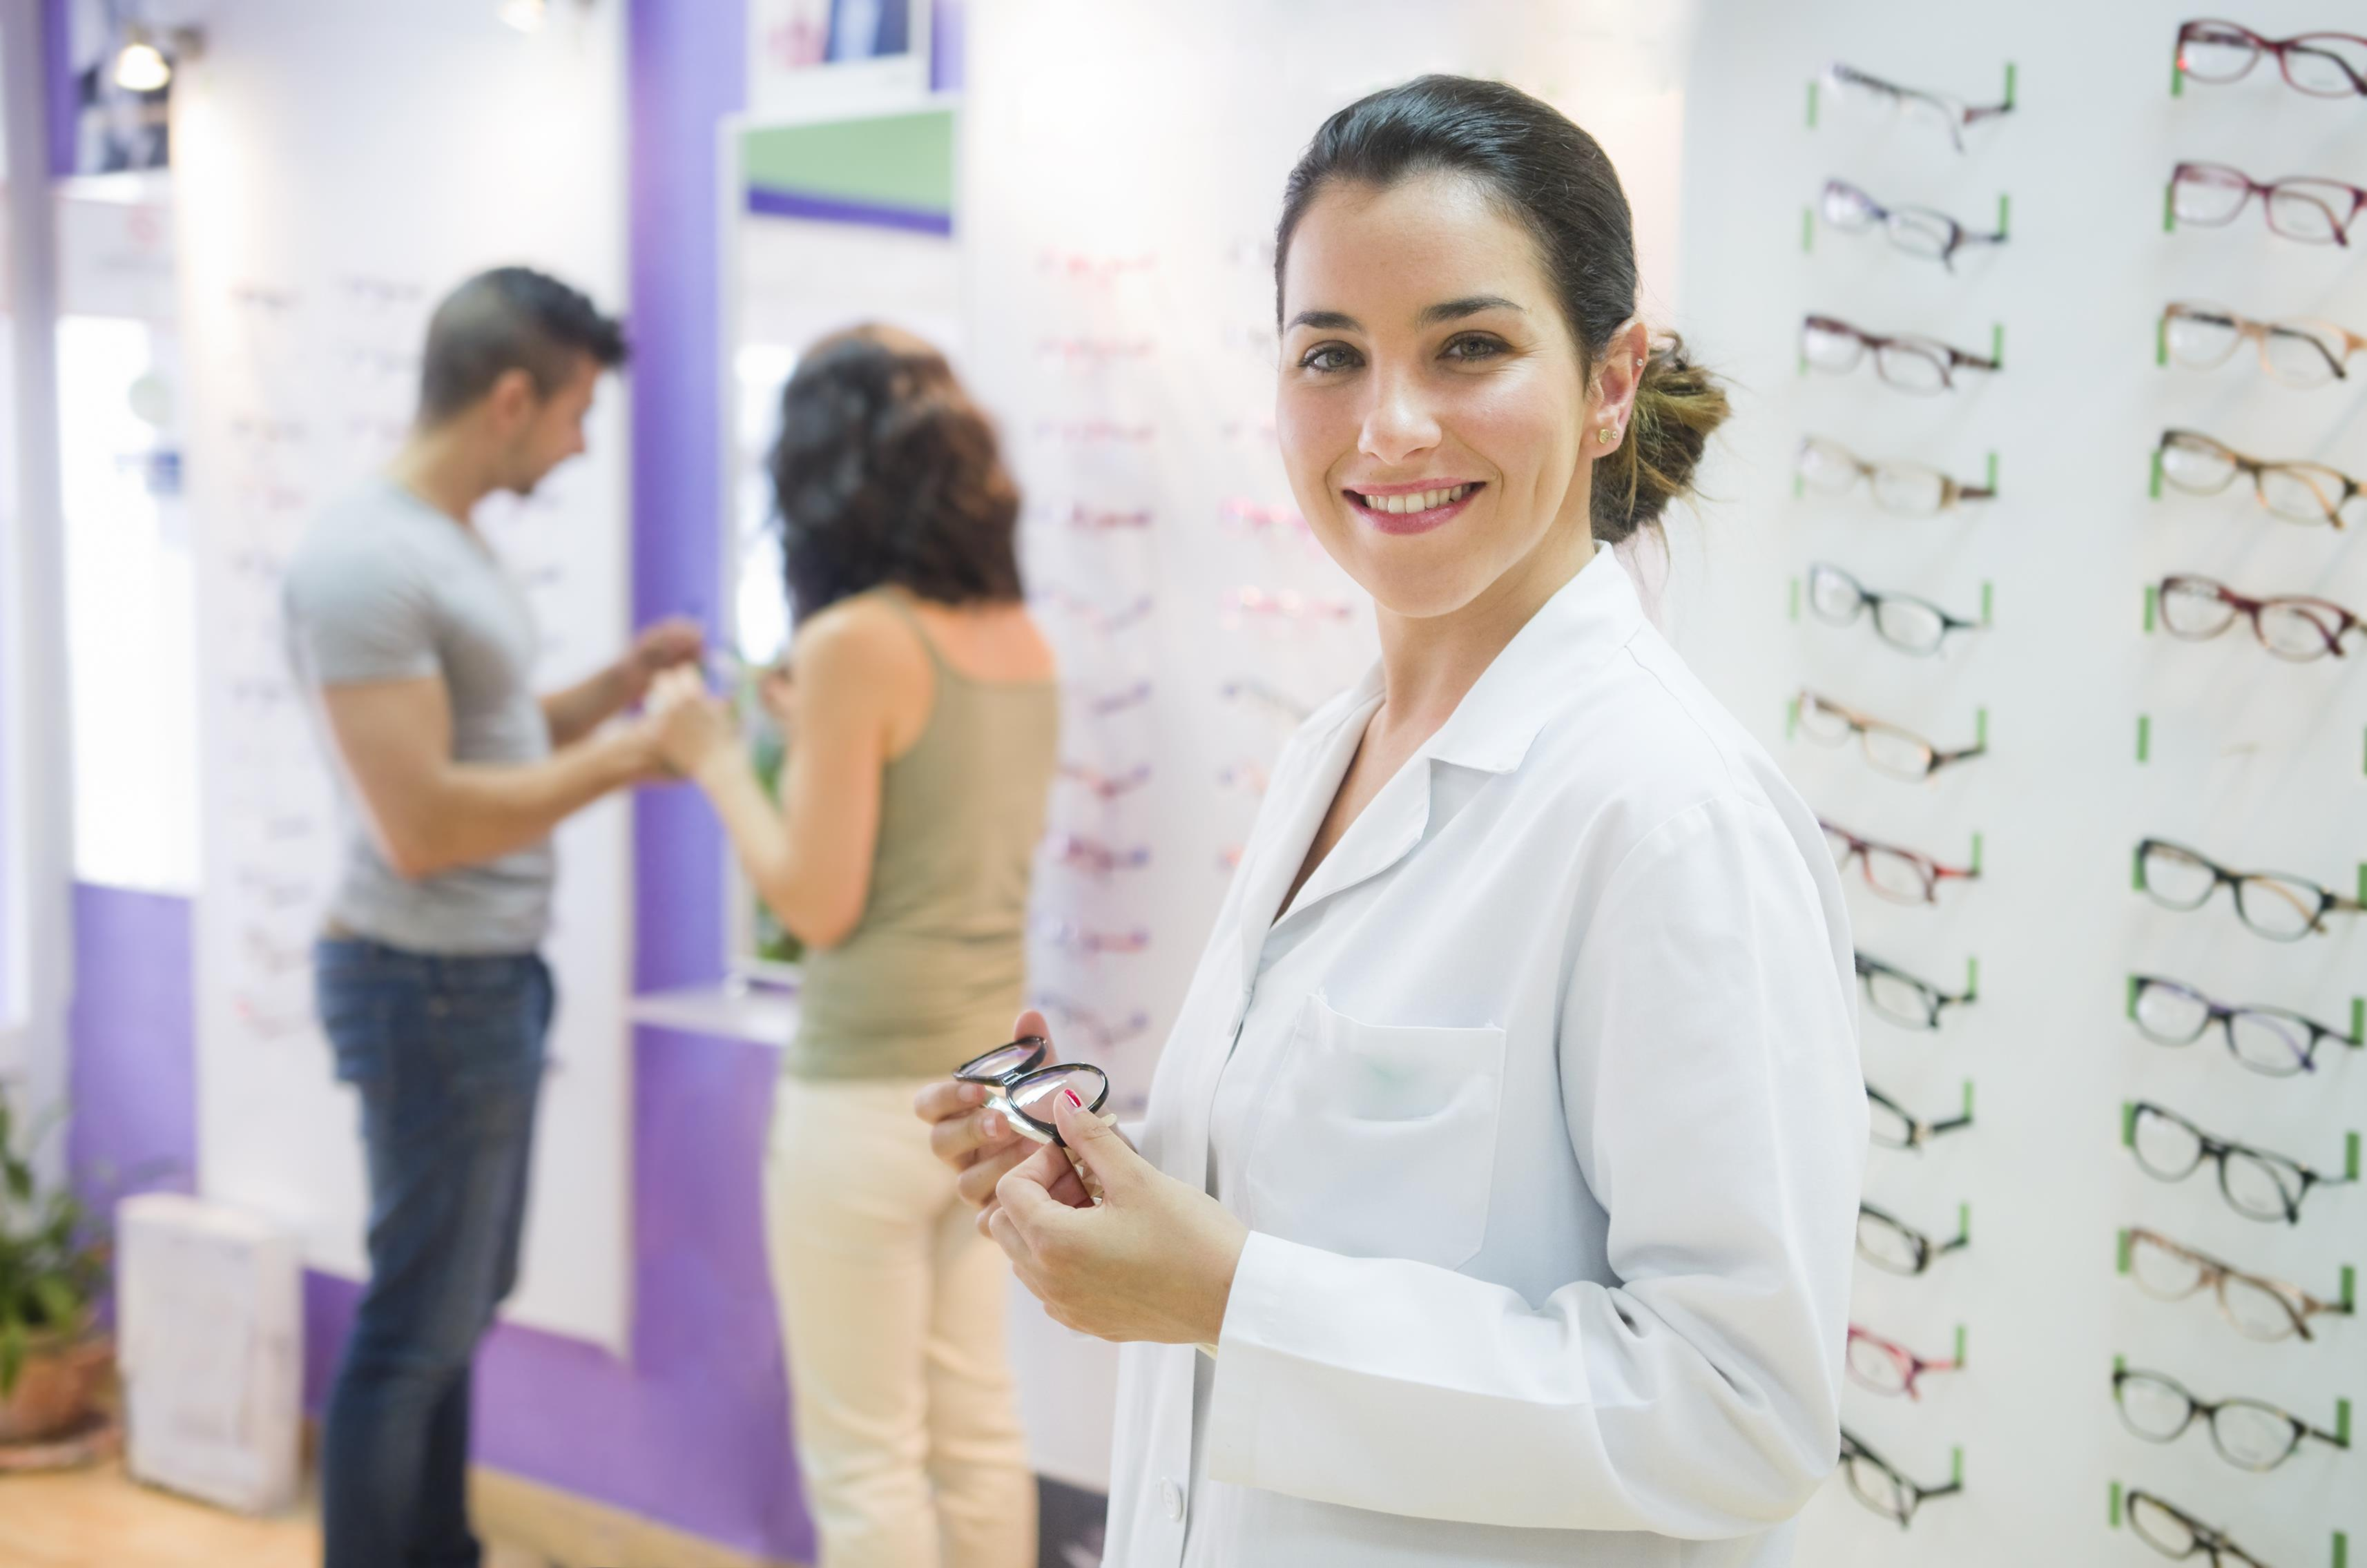 optometrist helping patients select eye glasses on the retail floor